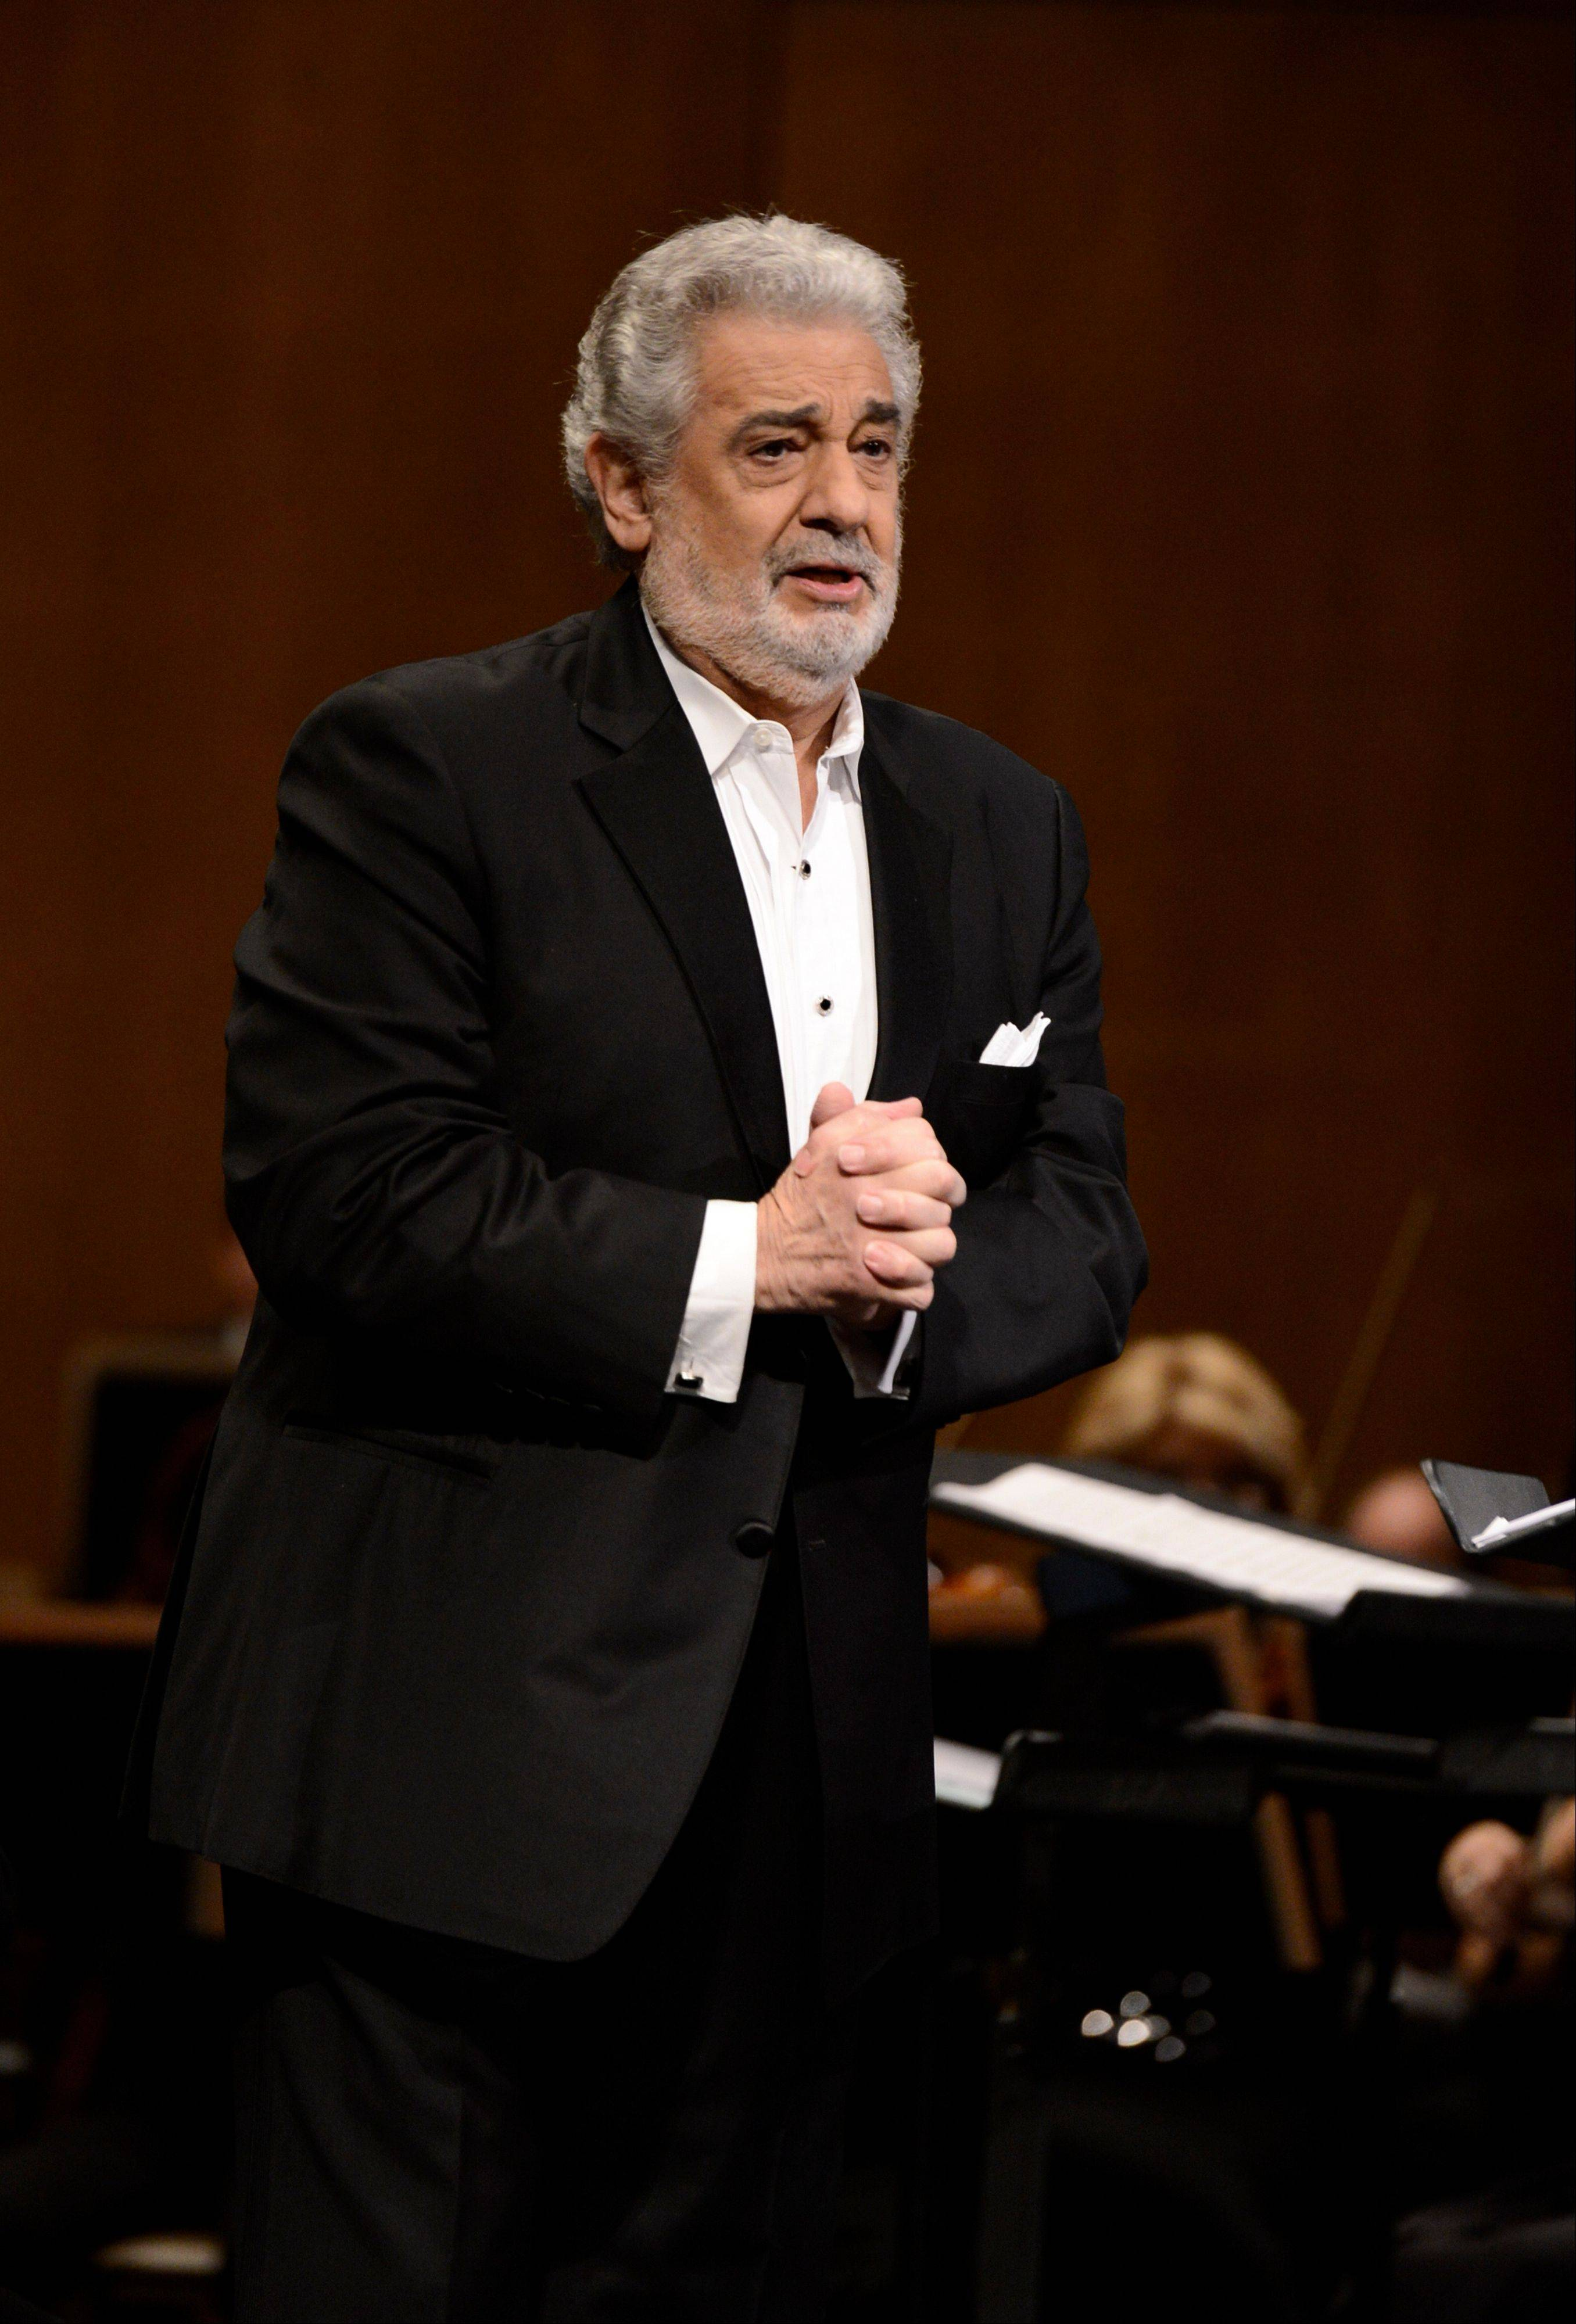 Tenor Pl�cido Domingo is in the hospital after suffering a blockage in an artery of the lungs. Domingo's publicist says the 72-year-old is expected to make a full recovery but will have to miss at least two appearances scheduled for later this month.